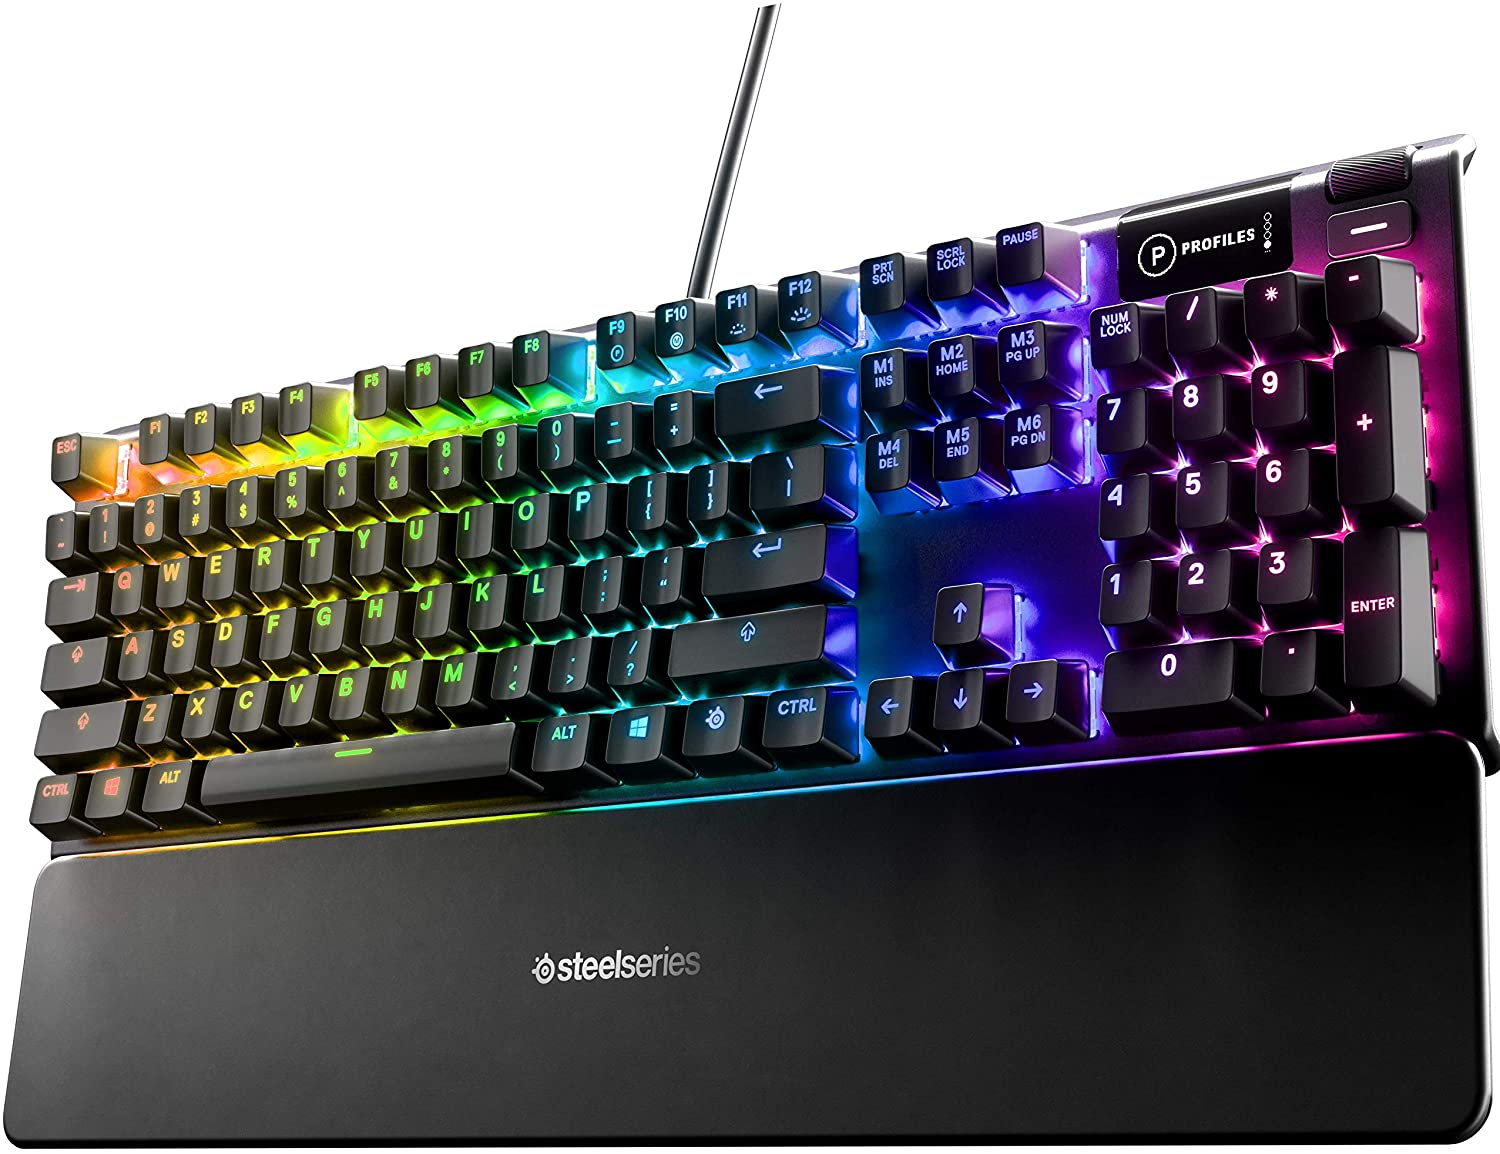 SteelSeries APEX 5 Hybrid Mechanical Gaming Keyboard Review